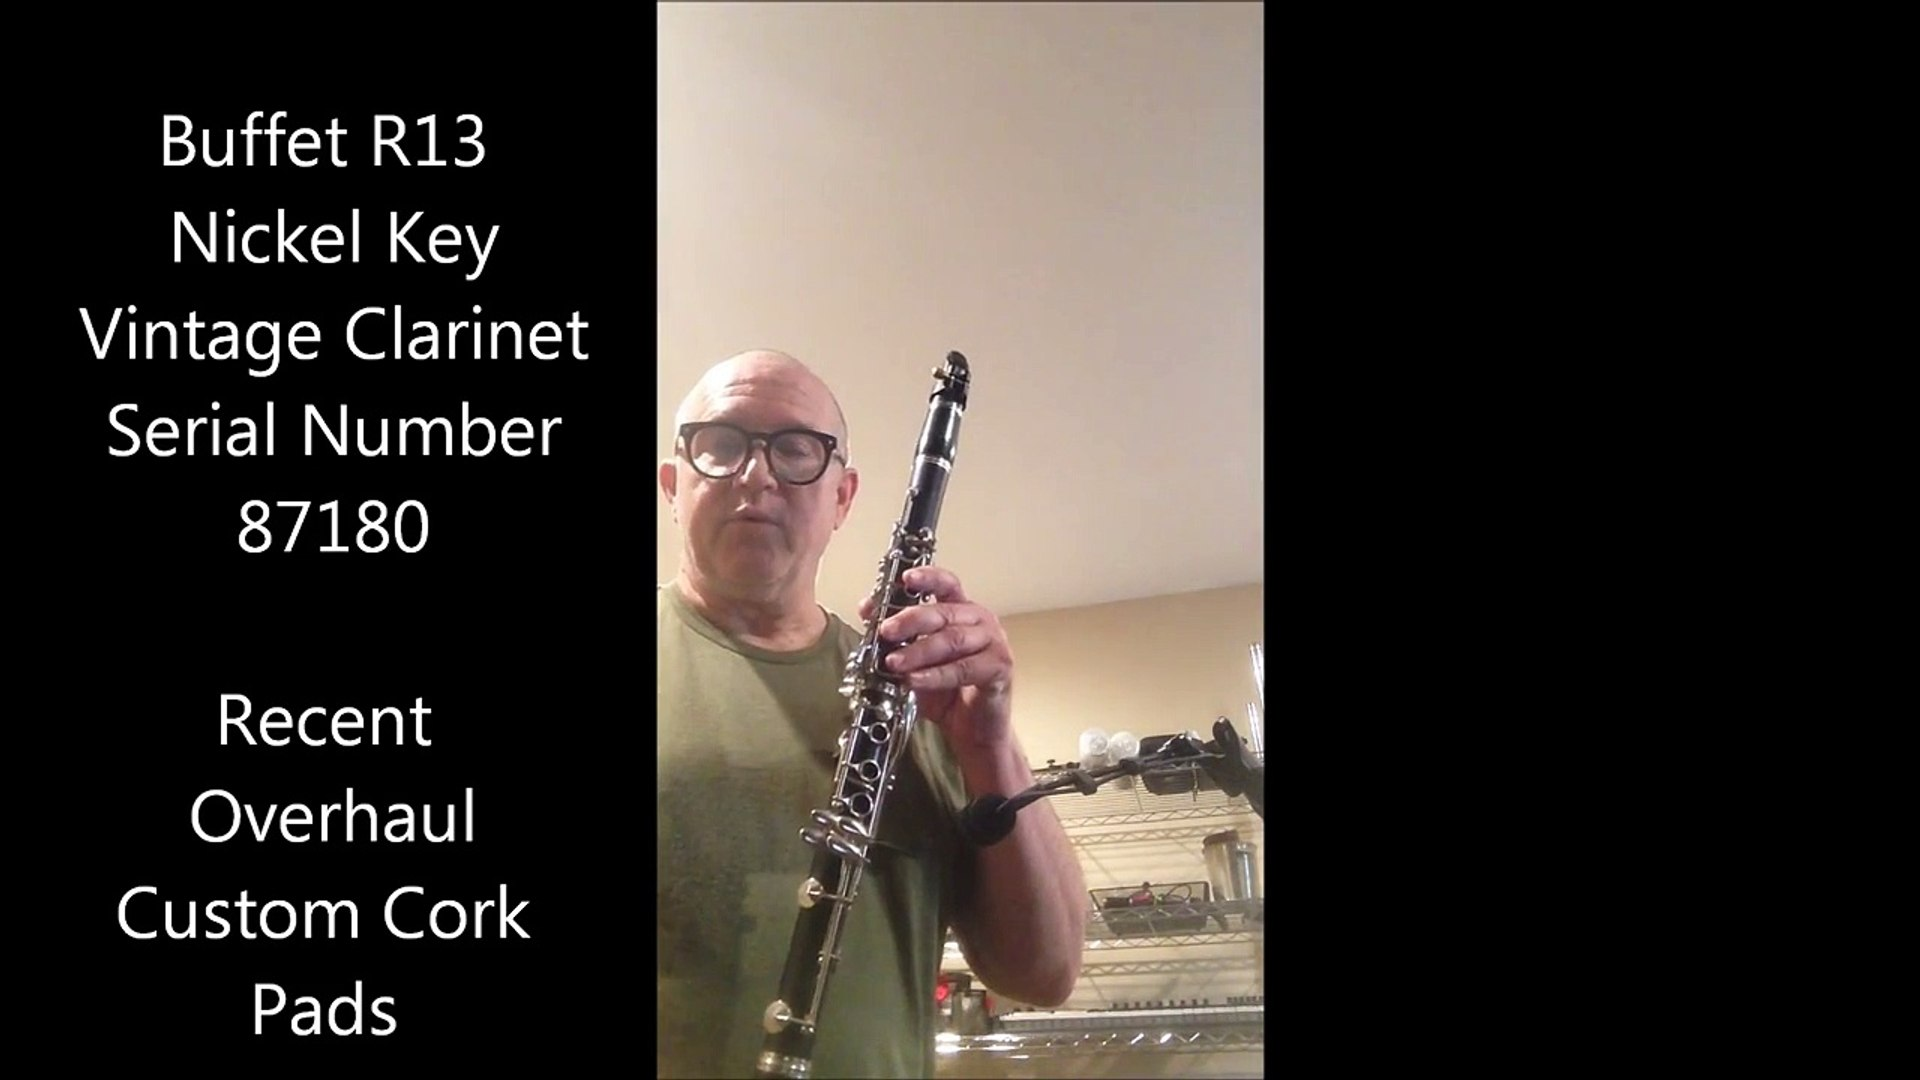 Groovy Buffet R13 Vintage Clarinet For Sale Complete Professional Overhaul Interior Design Ideas Gresisoteloinfo